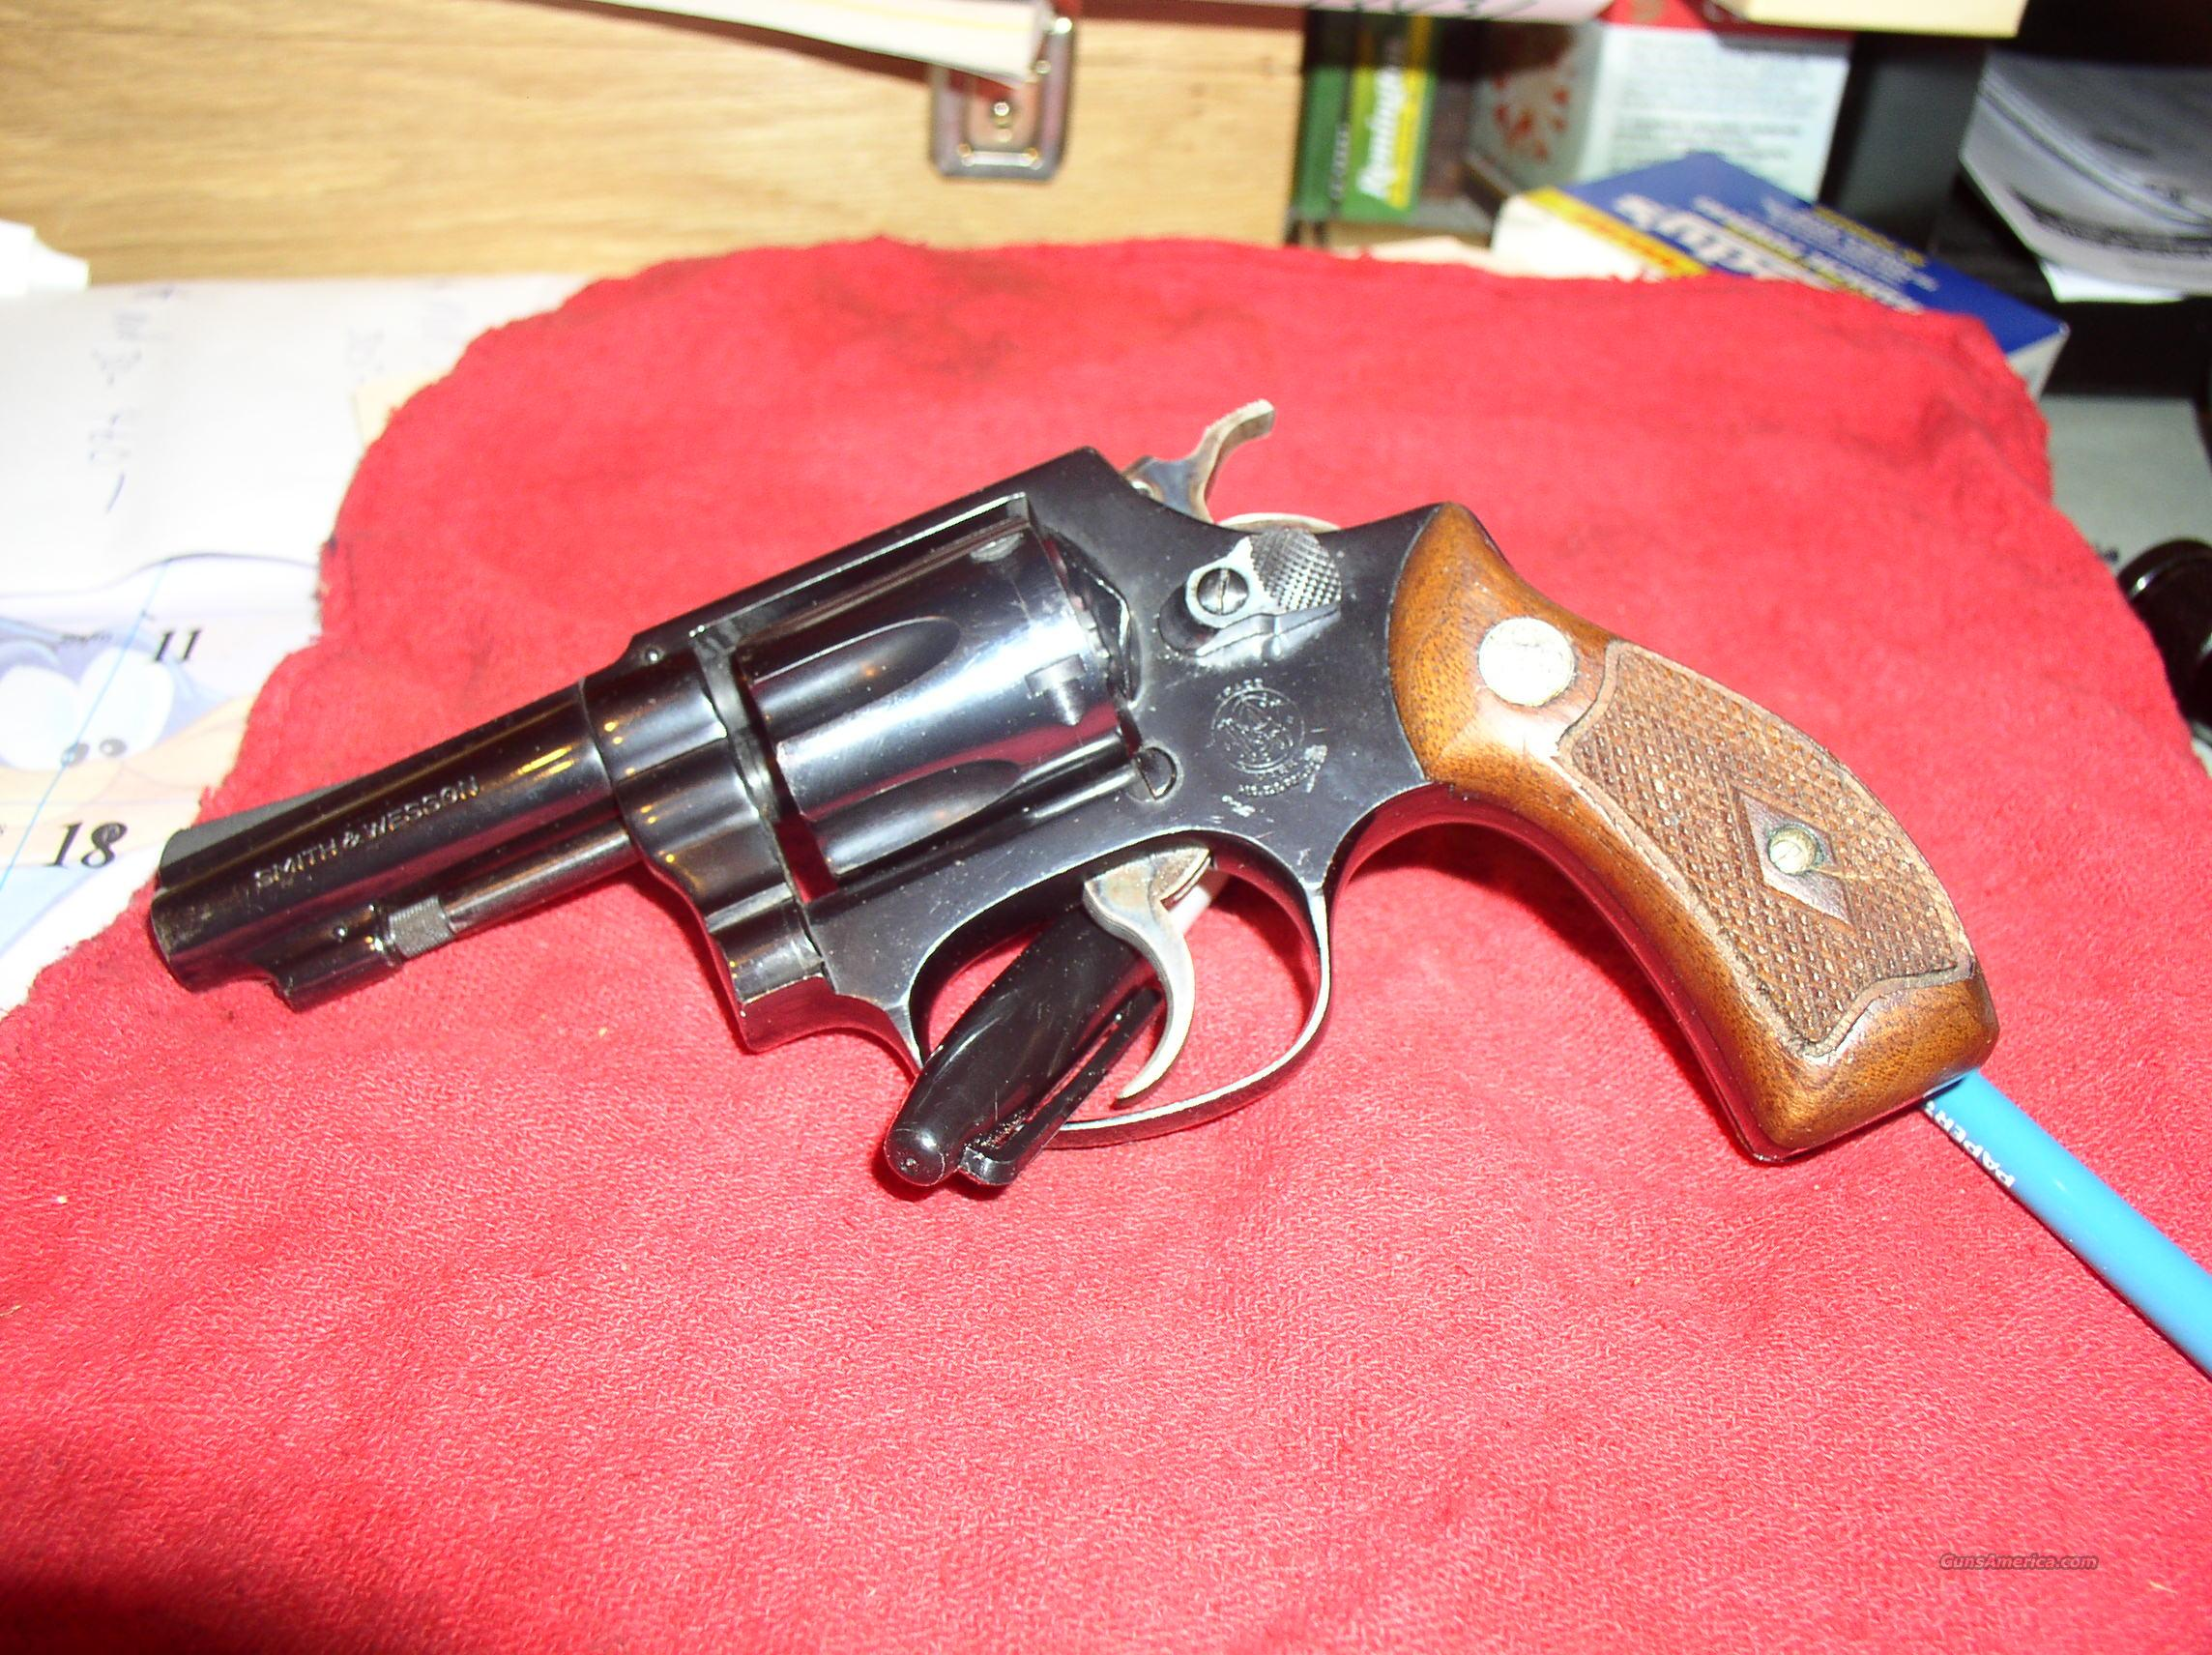 SMITH & WESSON 30-1  Guns > Pistols > Smith & Wesson Revolvers > Pocket Pistols